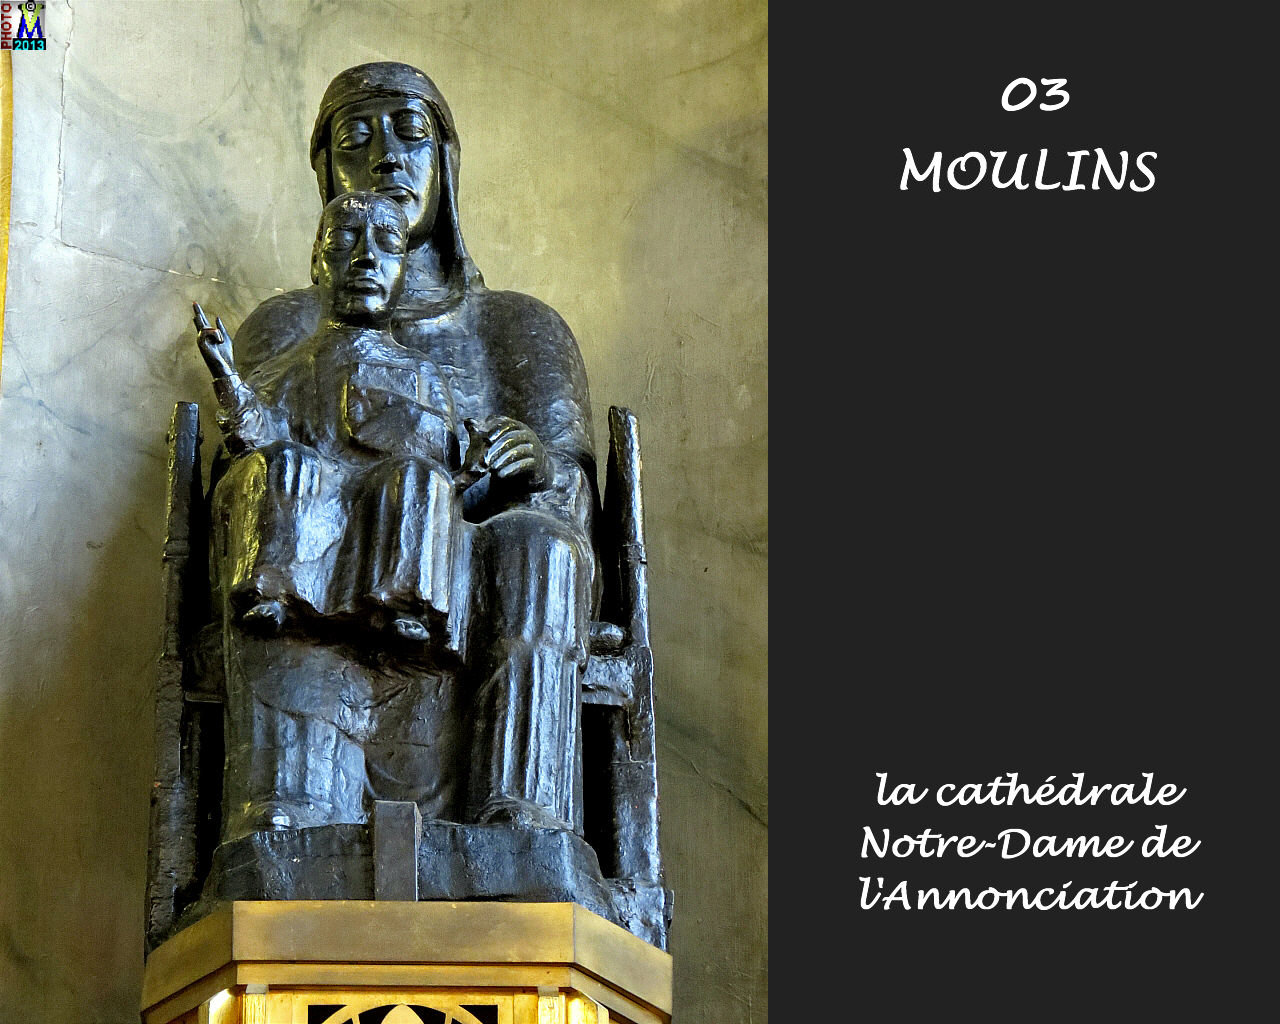 03MOULINS_cathedrale_242.jpg